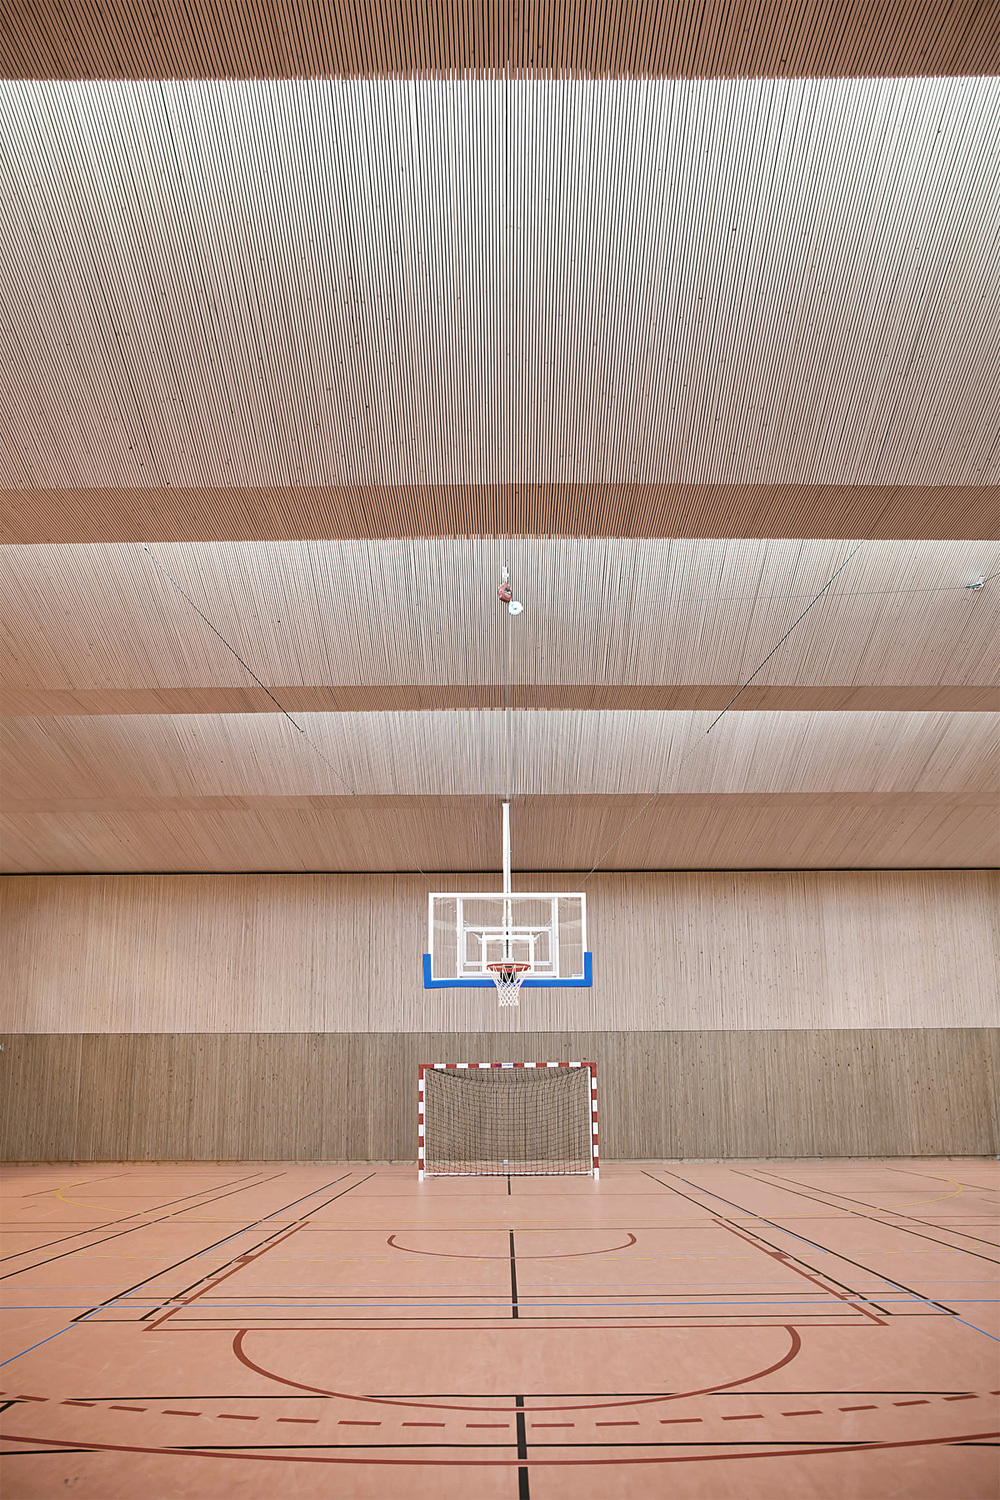 Pajol Sports Centre in Paris, France by Brisac Gonzalez Architects; Photo: Géraldine Andrieu/Hélène Robert